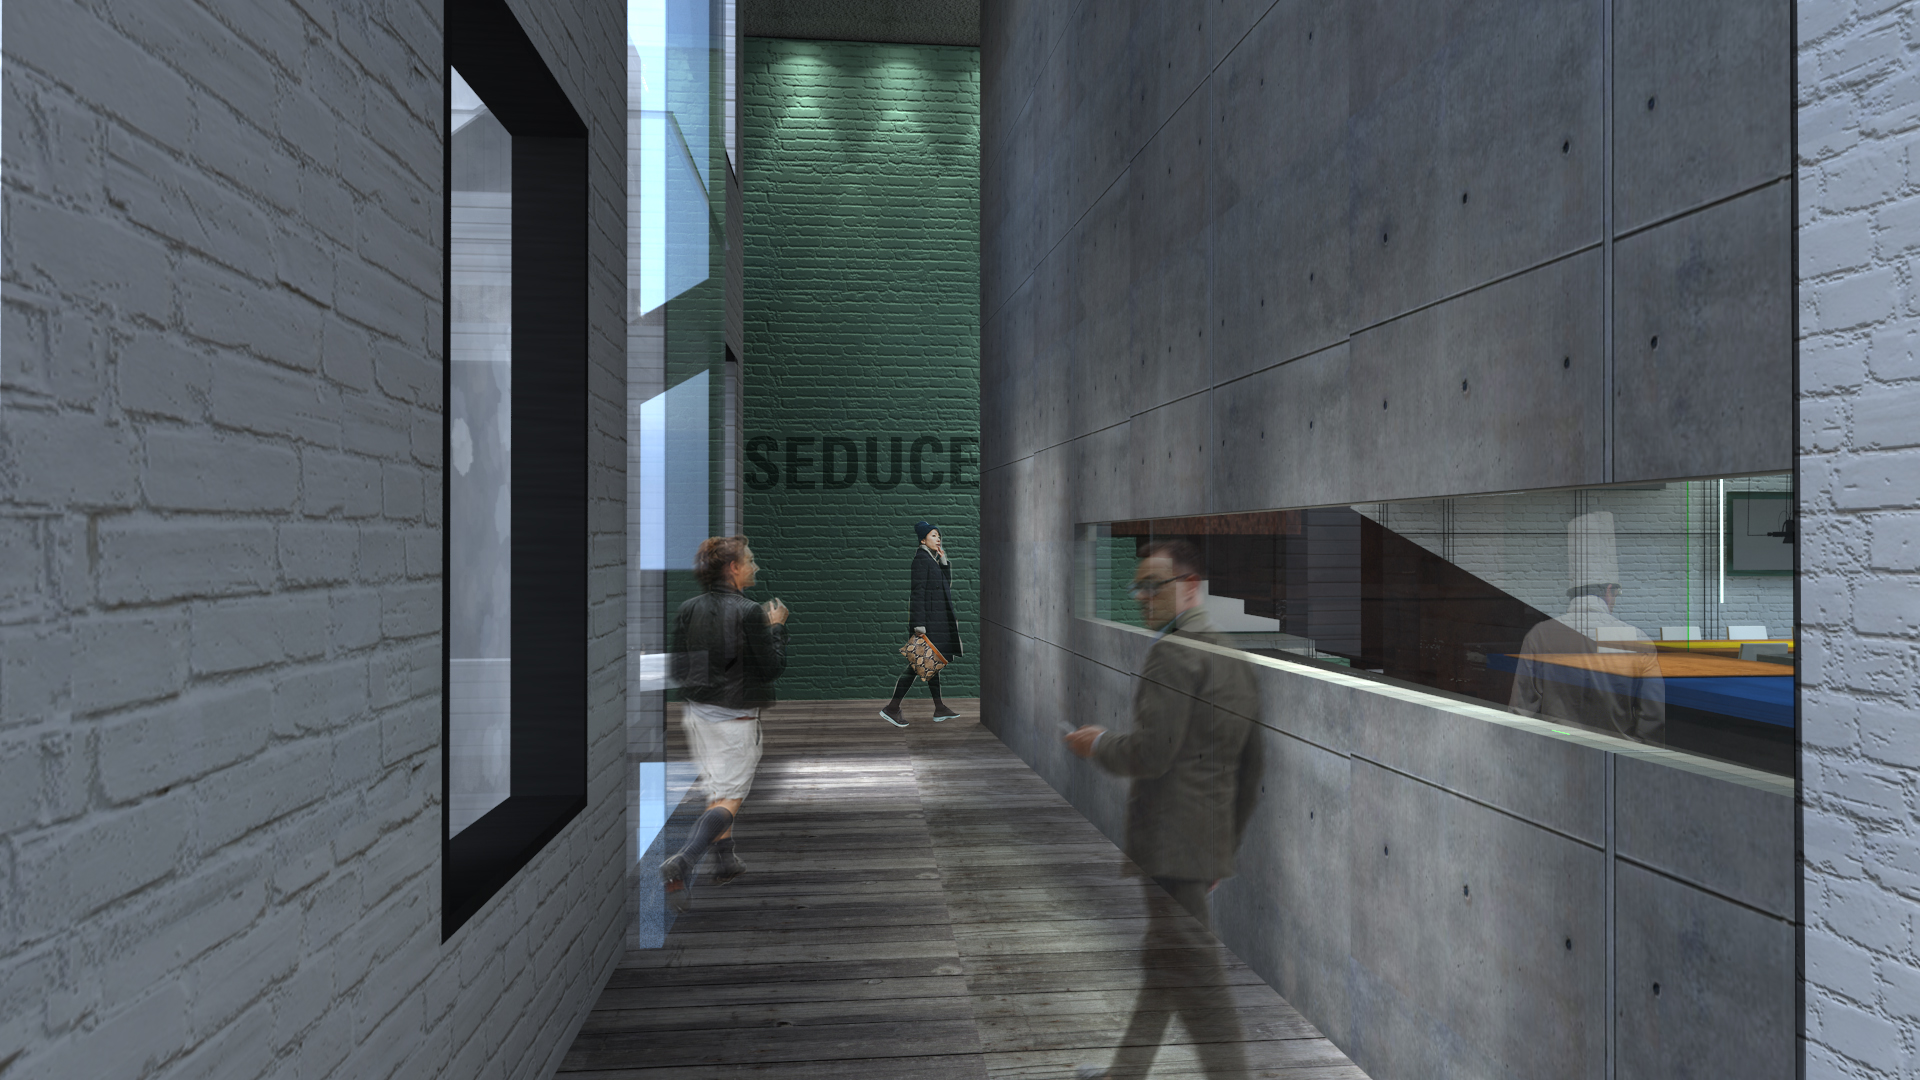 Approaching SEDUCE ME restaurant, you are seduced by the glimpse of what's going on next.